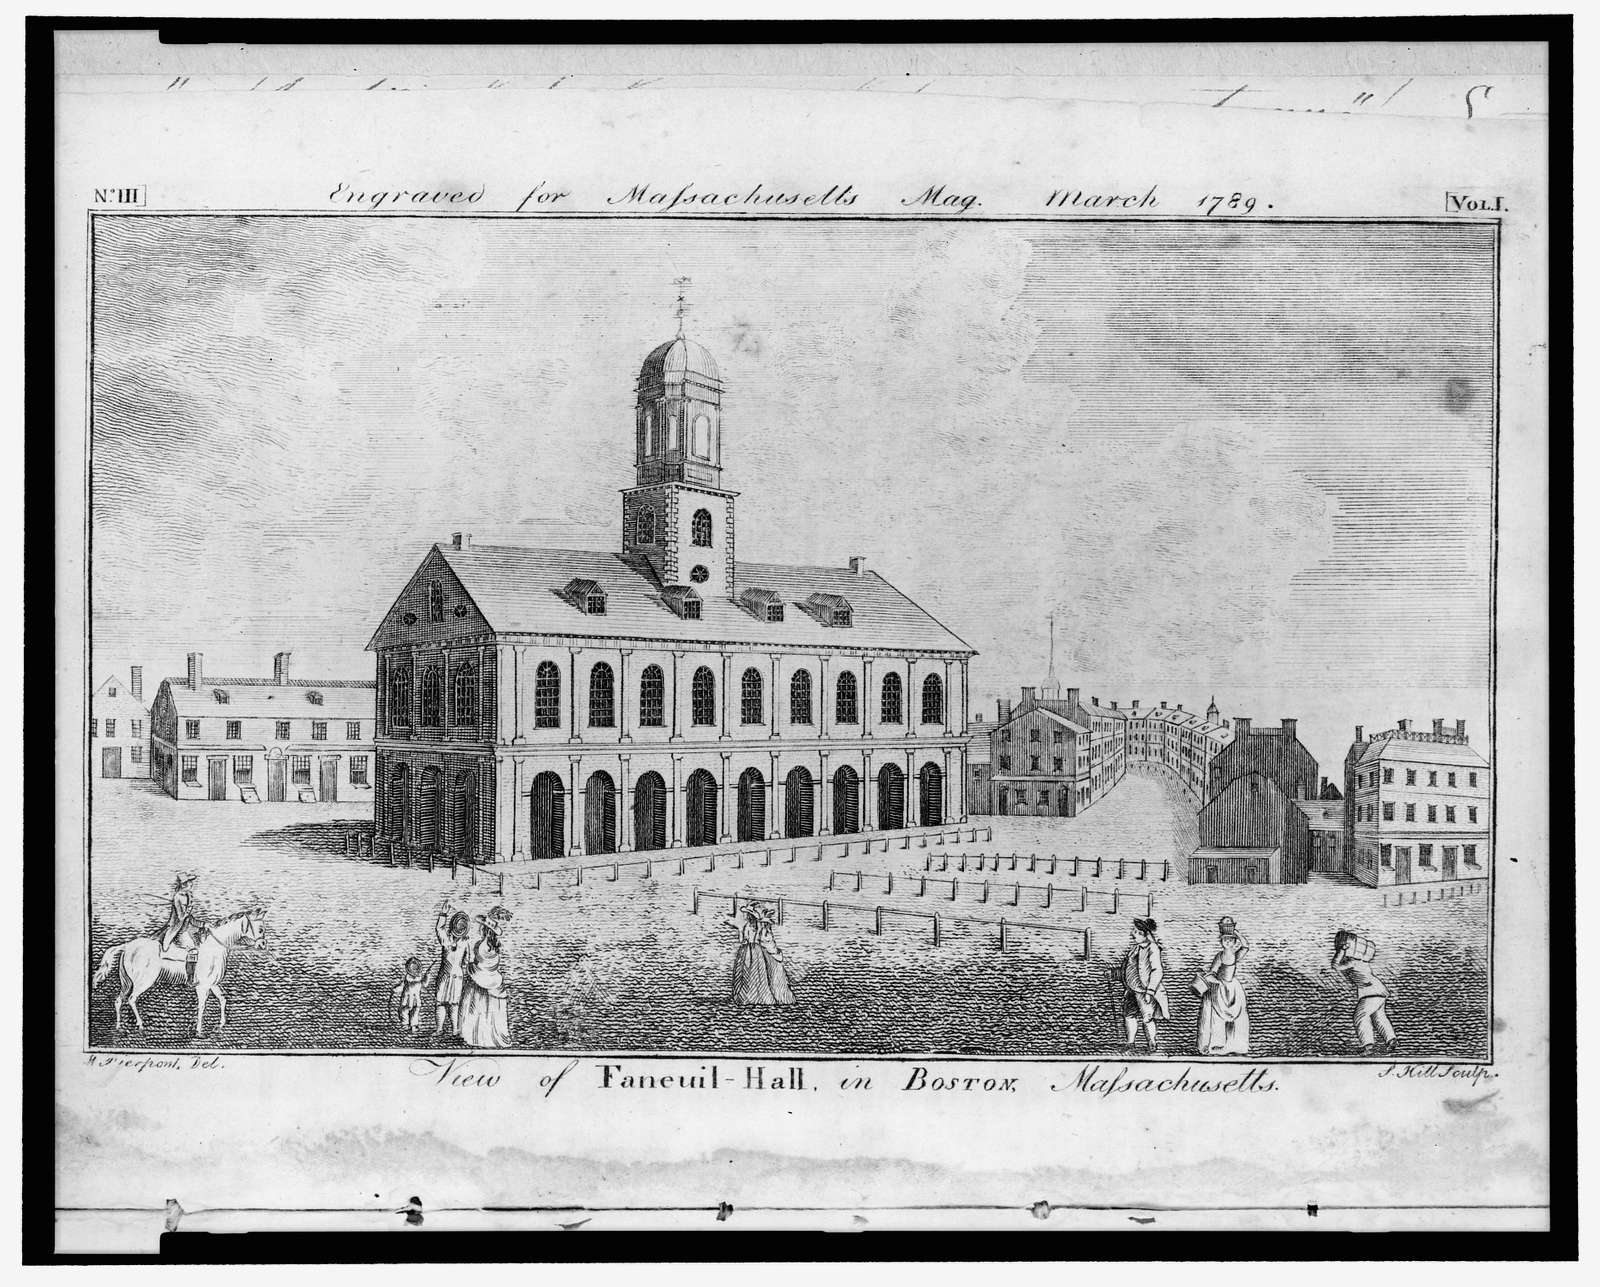 View of Faneuil-Hall in Boston, Massachusetts / W. Pierpont del. ; S. Hill sculp.